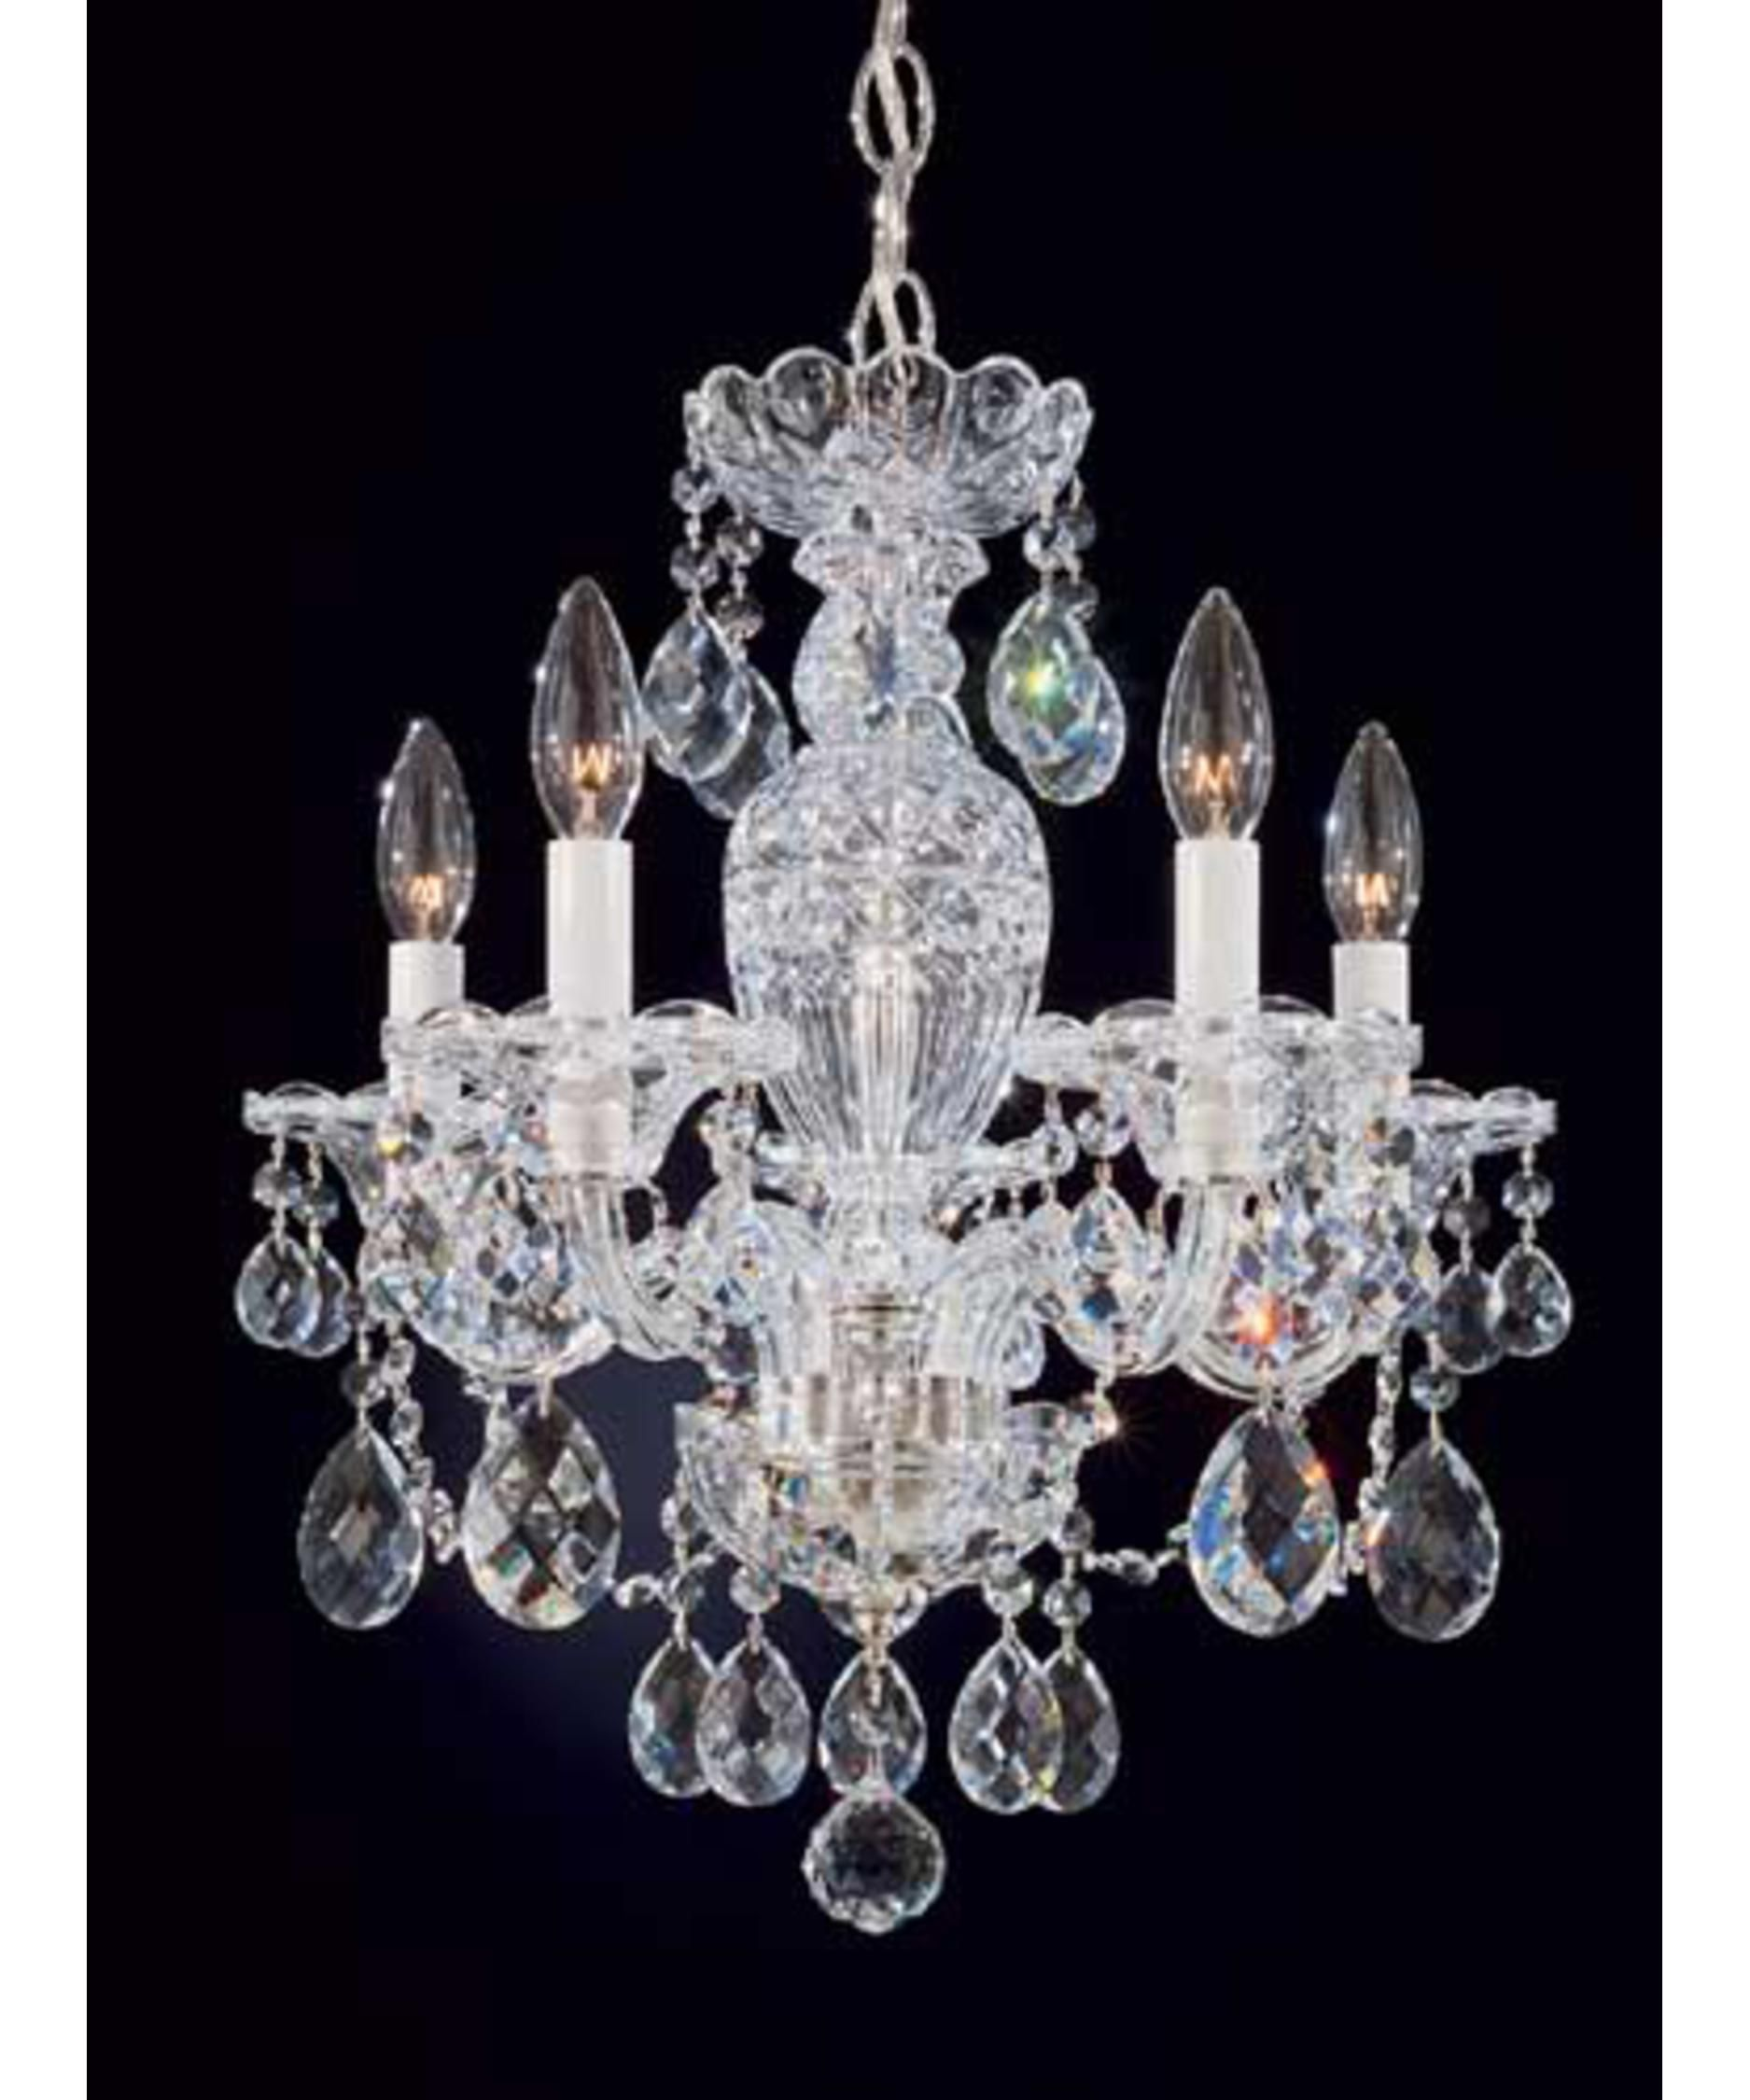 Chandelier for the girls bath tub room new house pinterest with its luxurious shine the schonbek sterling collection wide crystal chandelier brings old world grandeur uses five maximum 60 watt candelabra bulbs arubaitofo Image collections